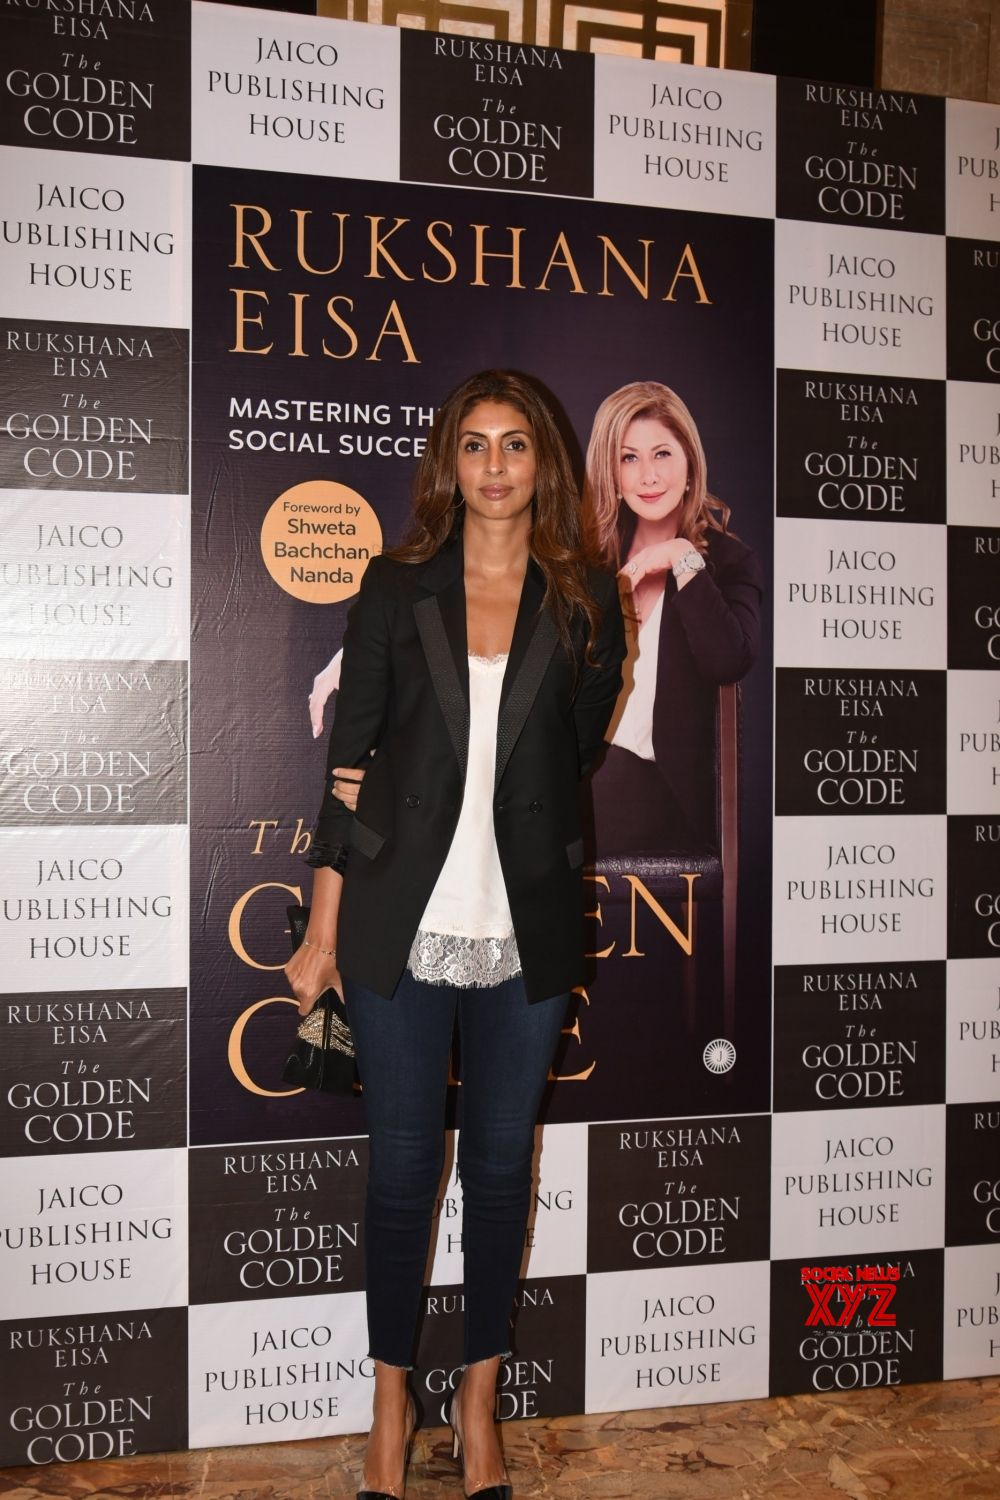 Mumbai: Shweta Bachchan Nanda and Rahul Khanna during a book launch